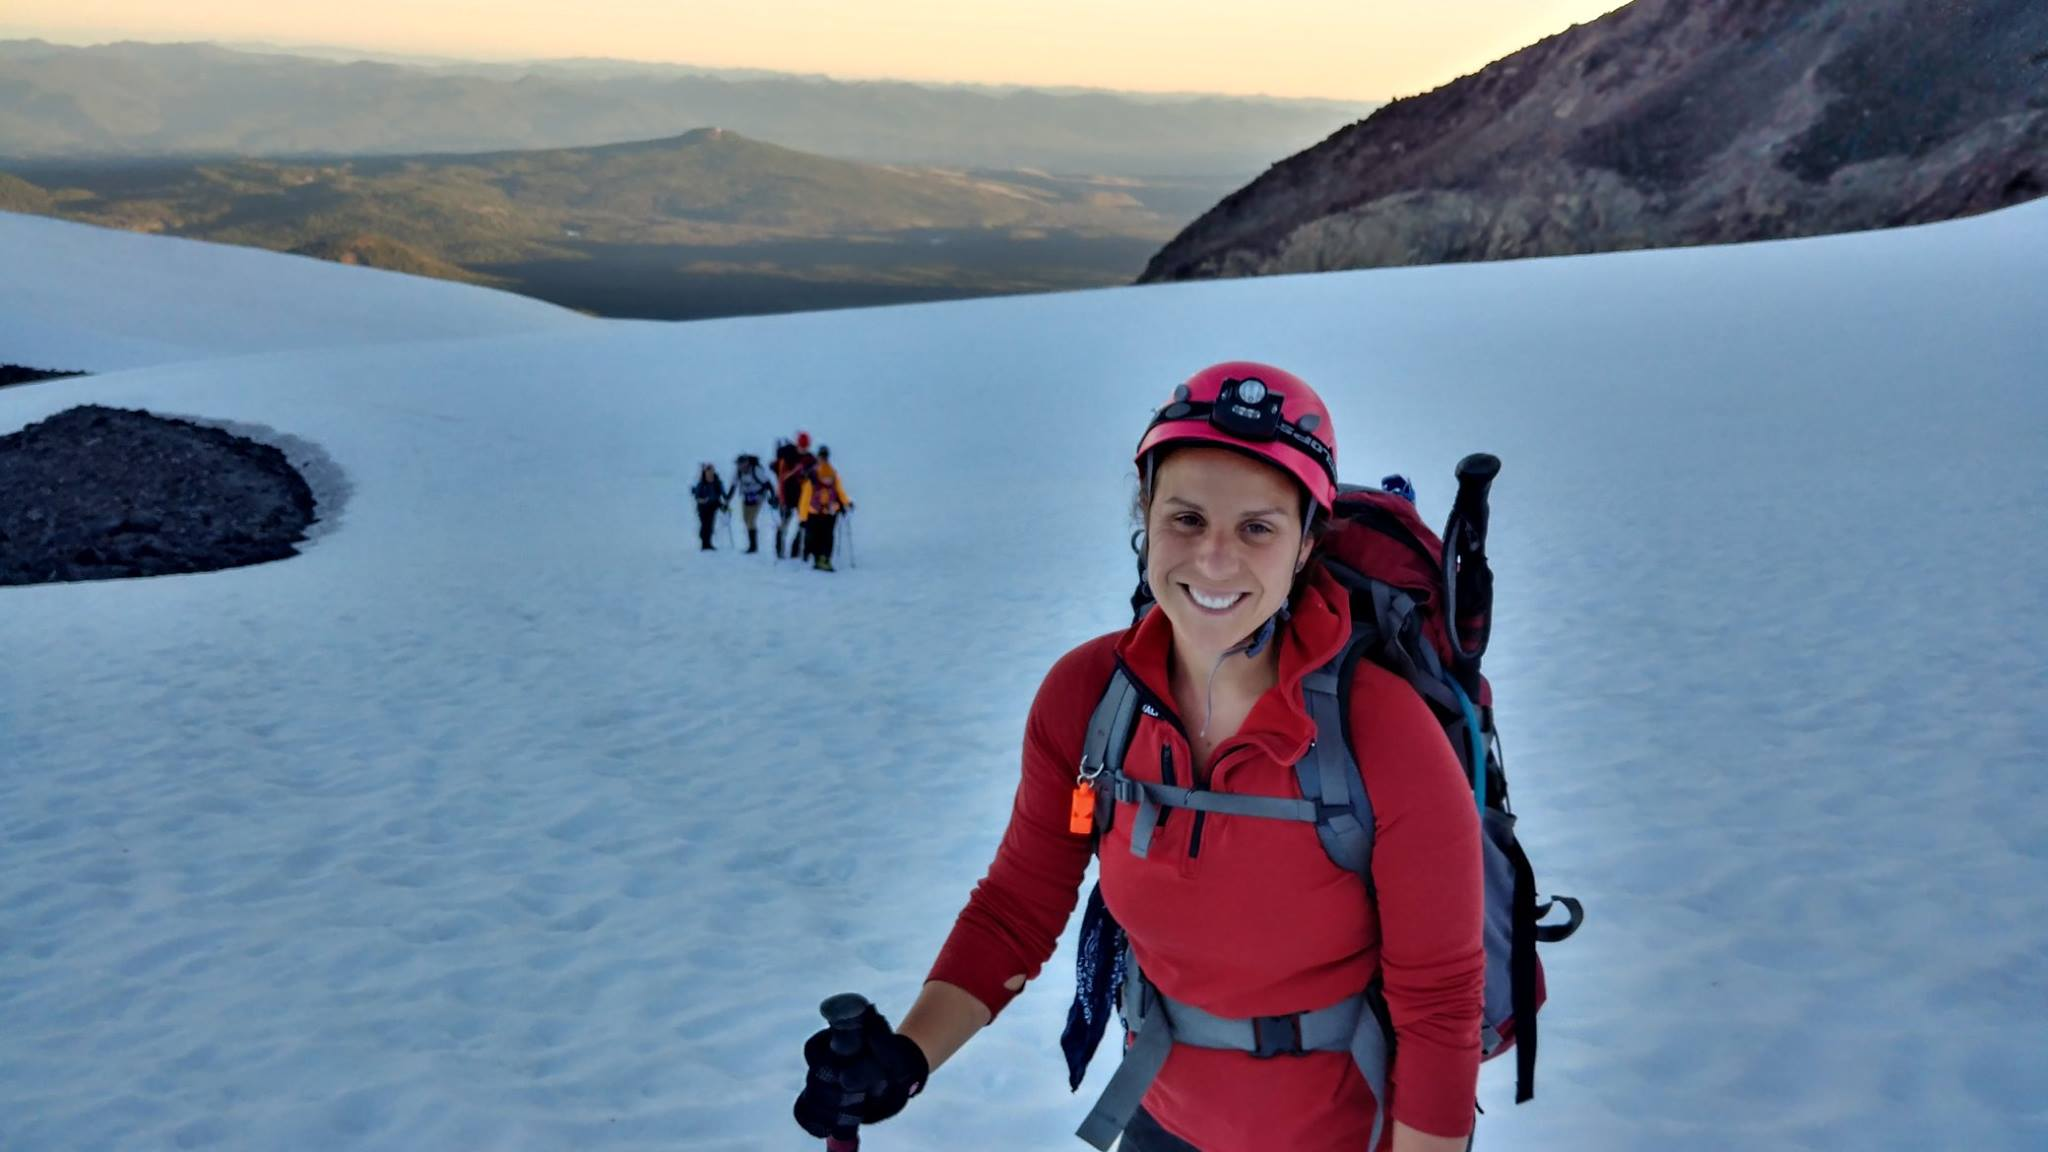 Our founder, Stefanie, at the summit of Middle Sister. Getting here required some serious prep and planning!